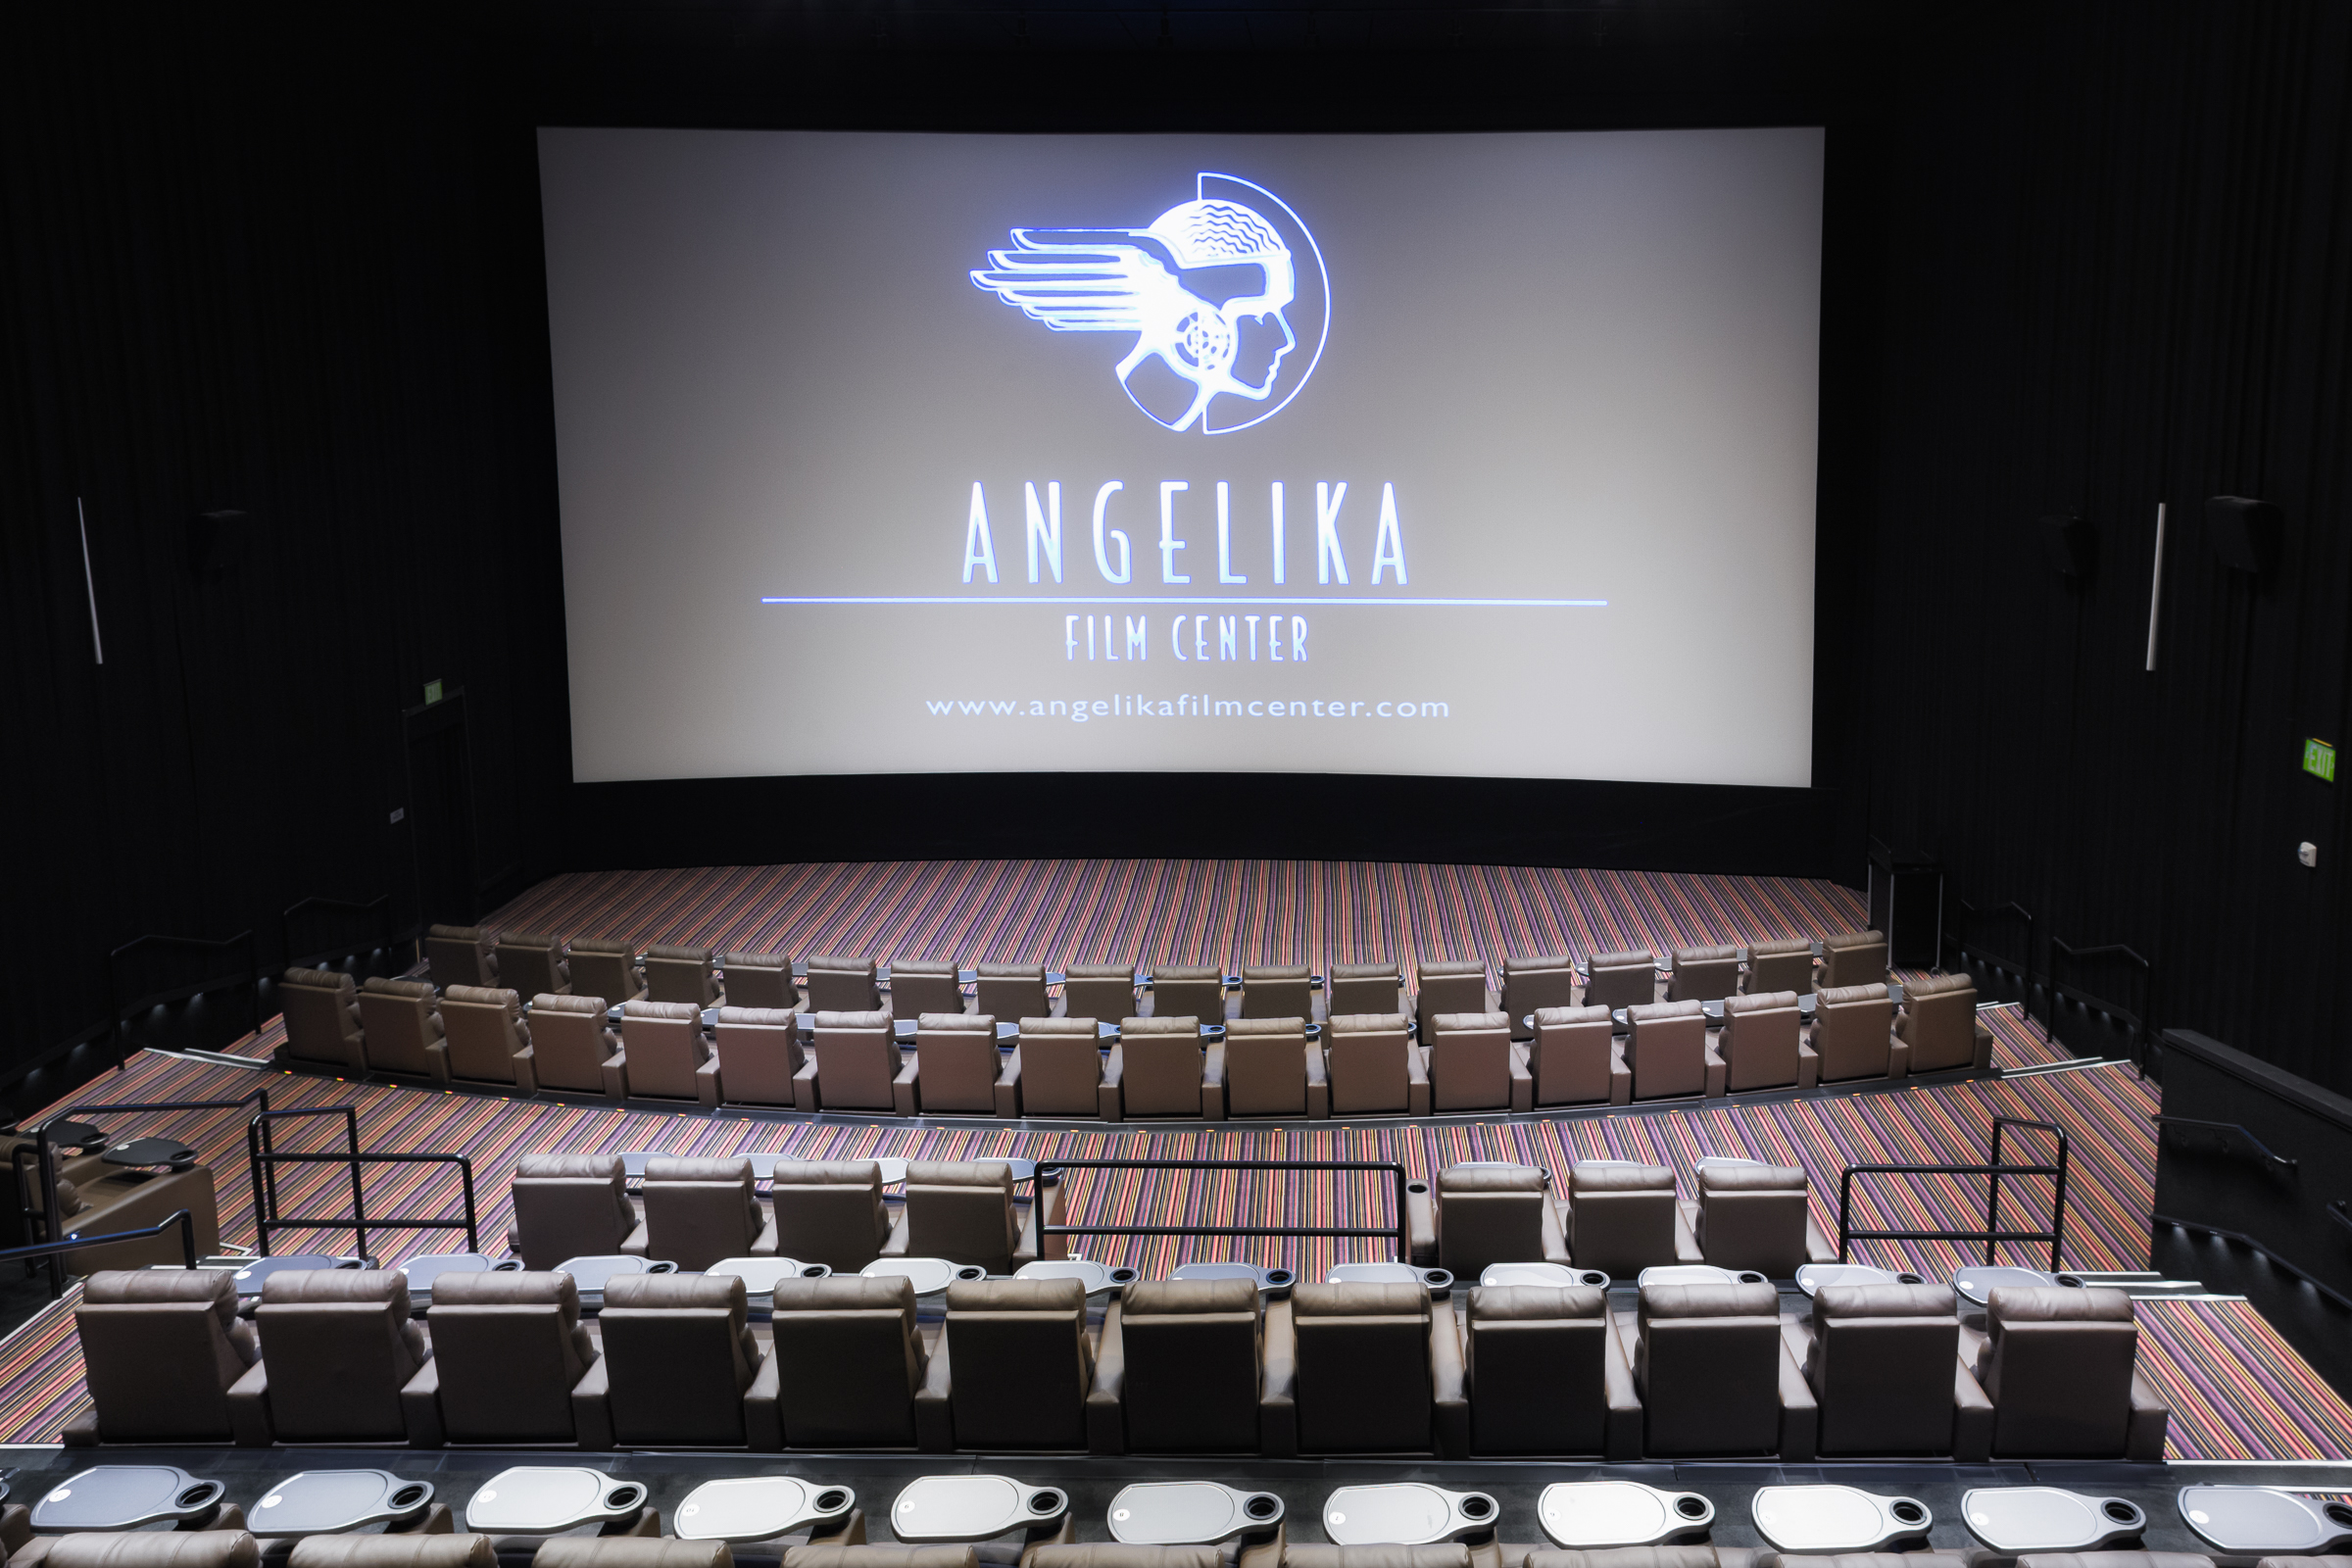 Delawie - Anjelica Film Center & Cafe